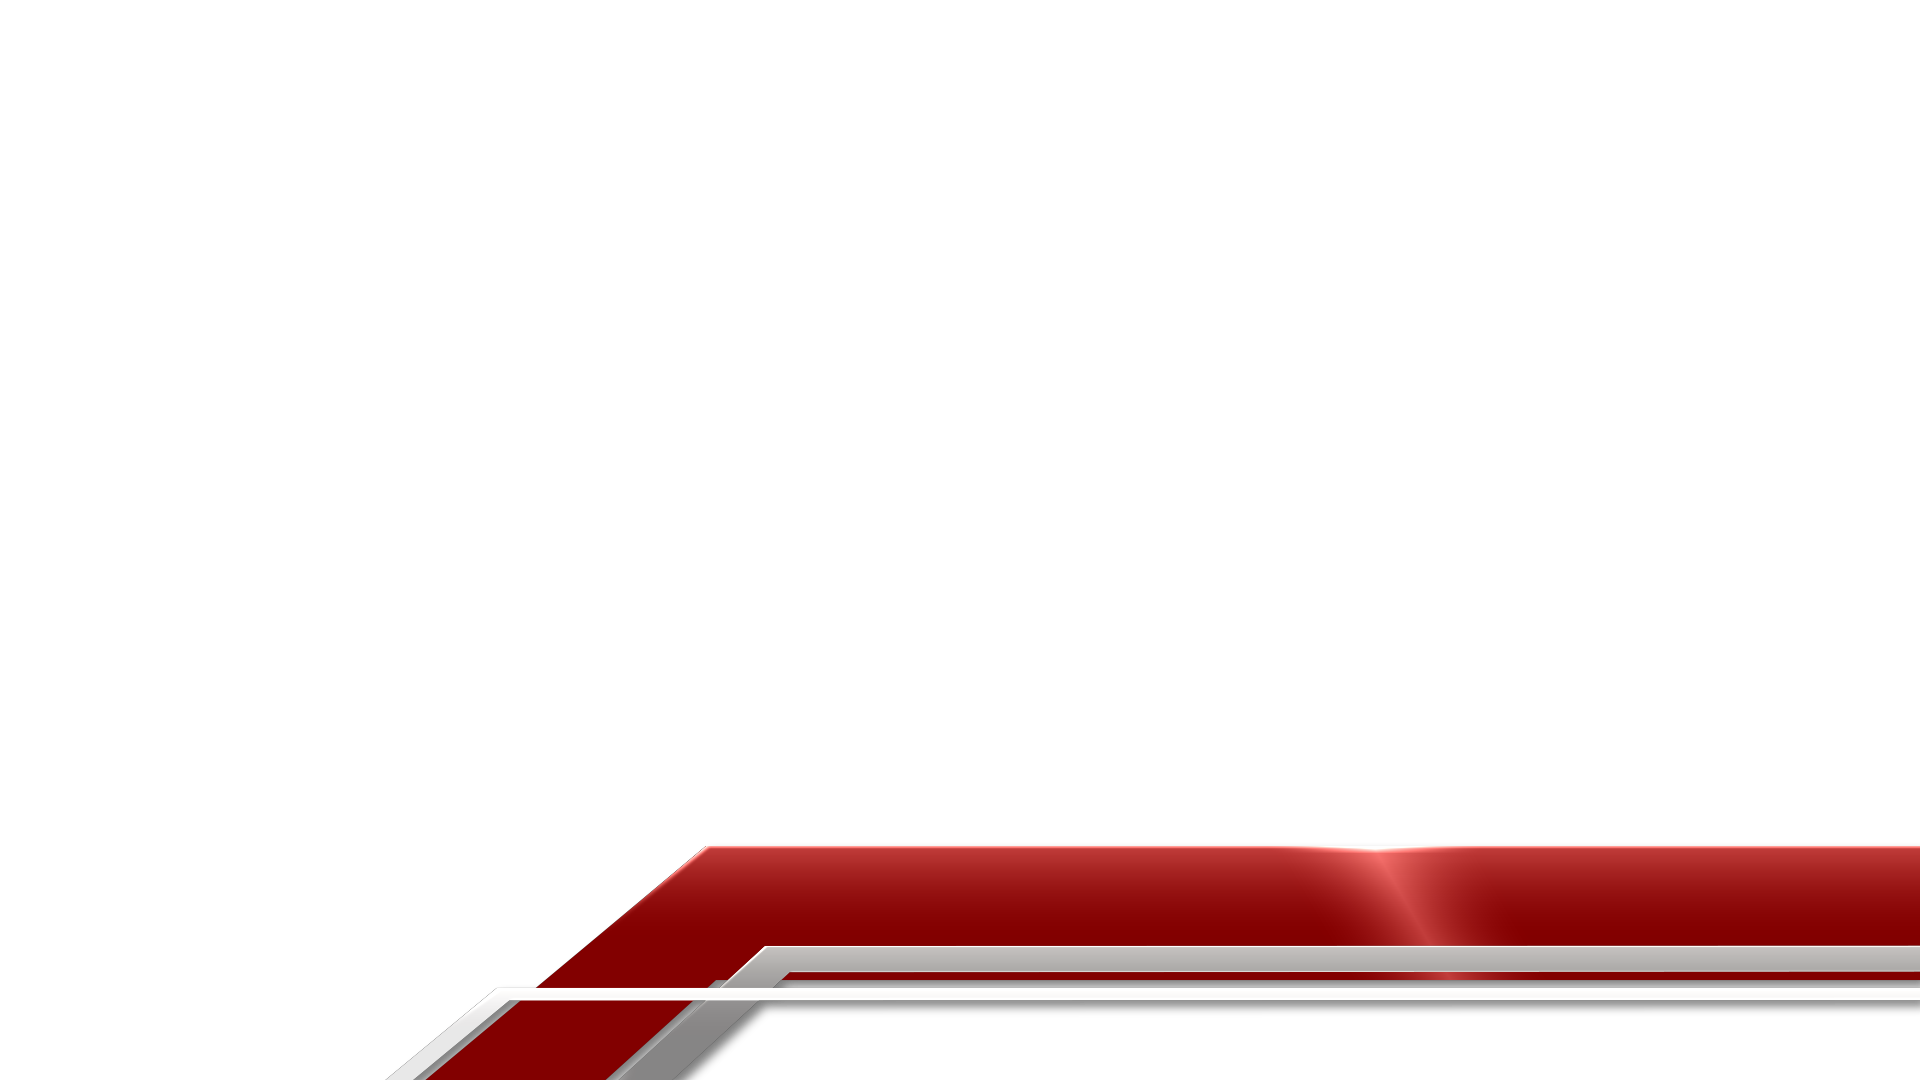 Graphic Lower Third 9 Red Unlimited Free Stock Photos